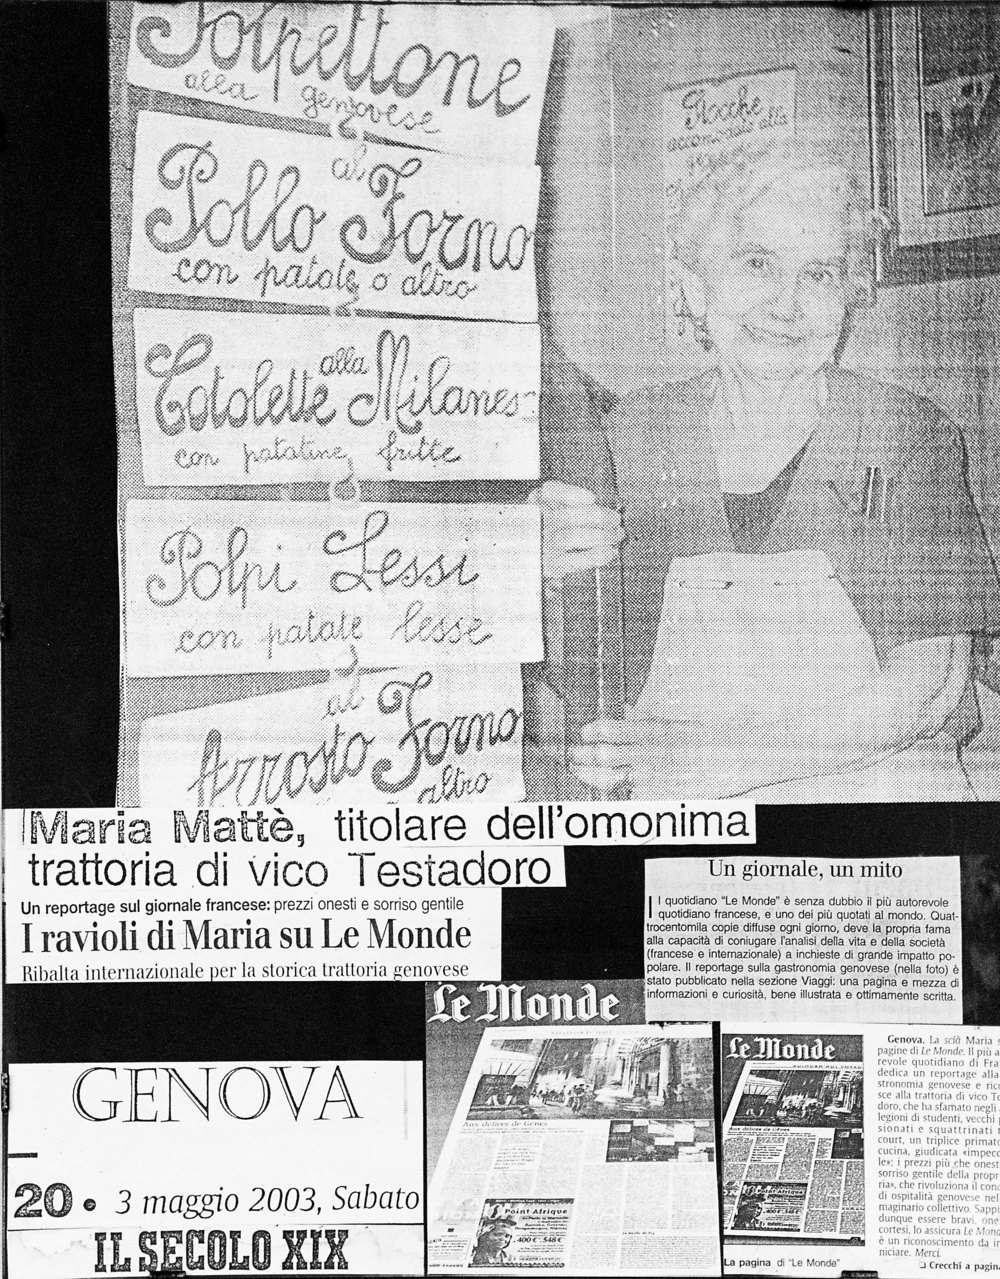 Some articles hanging on the wall appraising the food and hospitality of the infamous Maria.